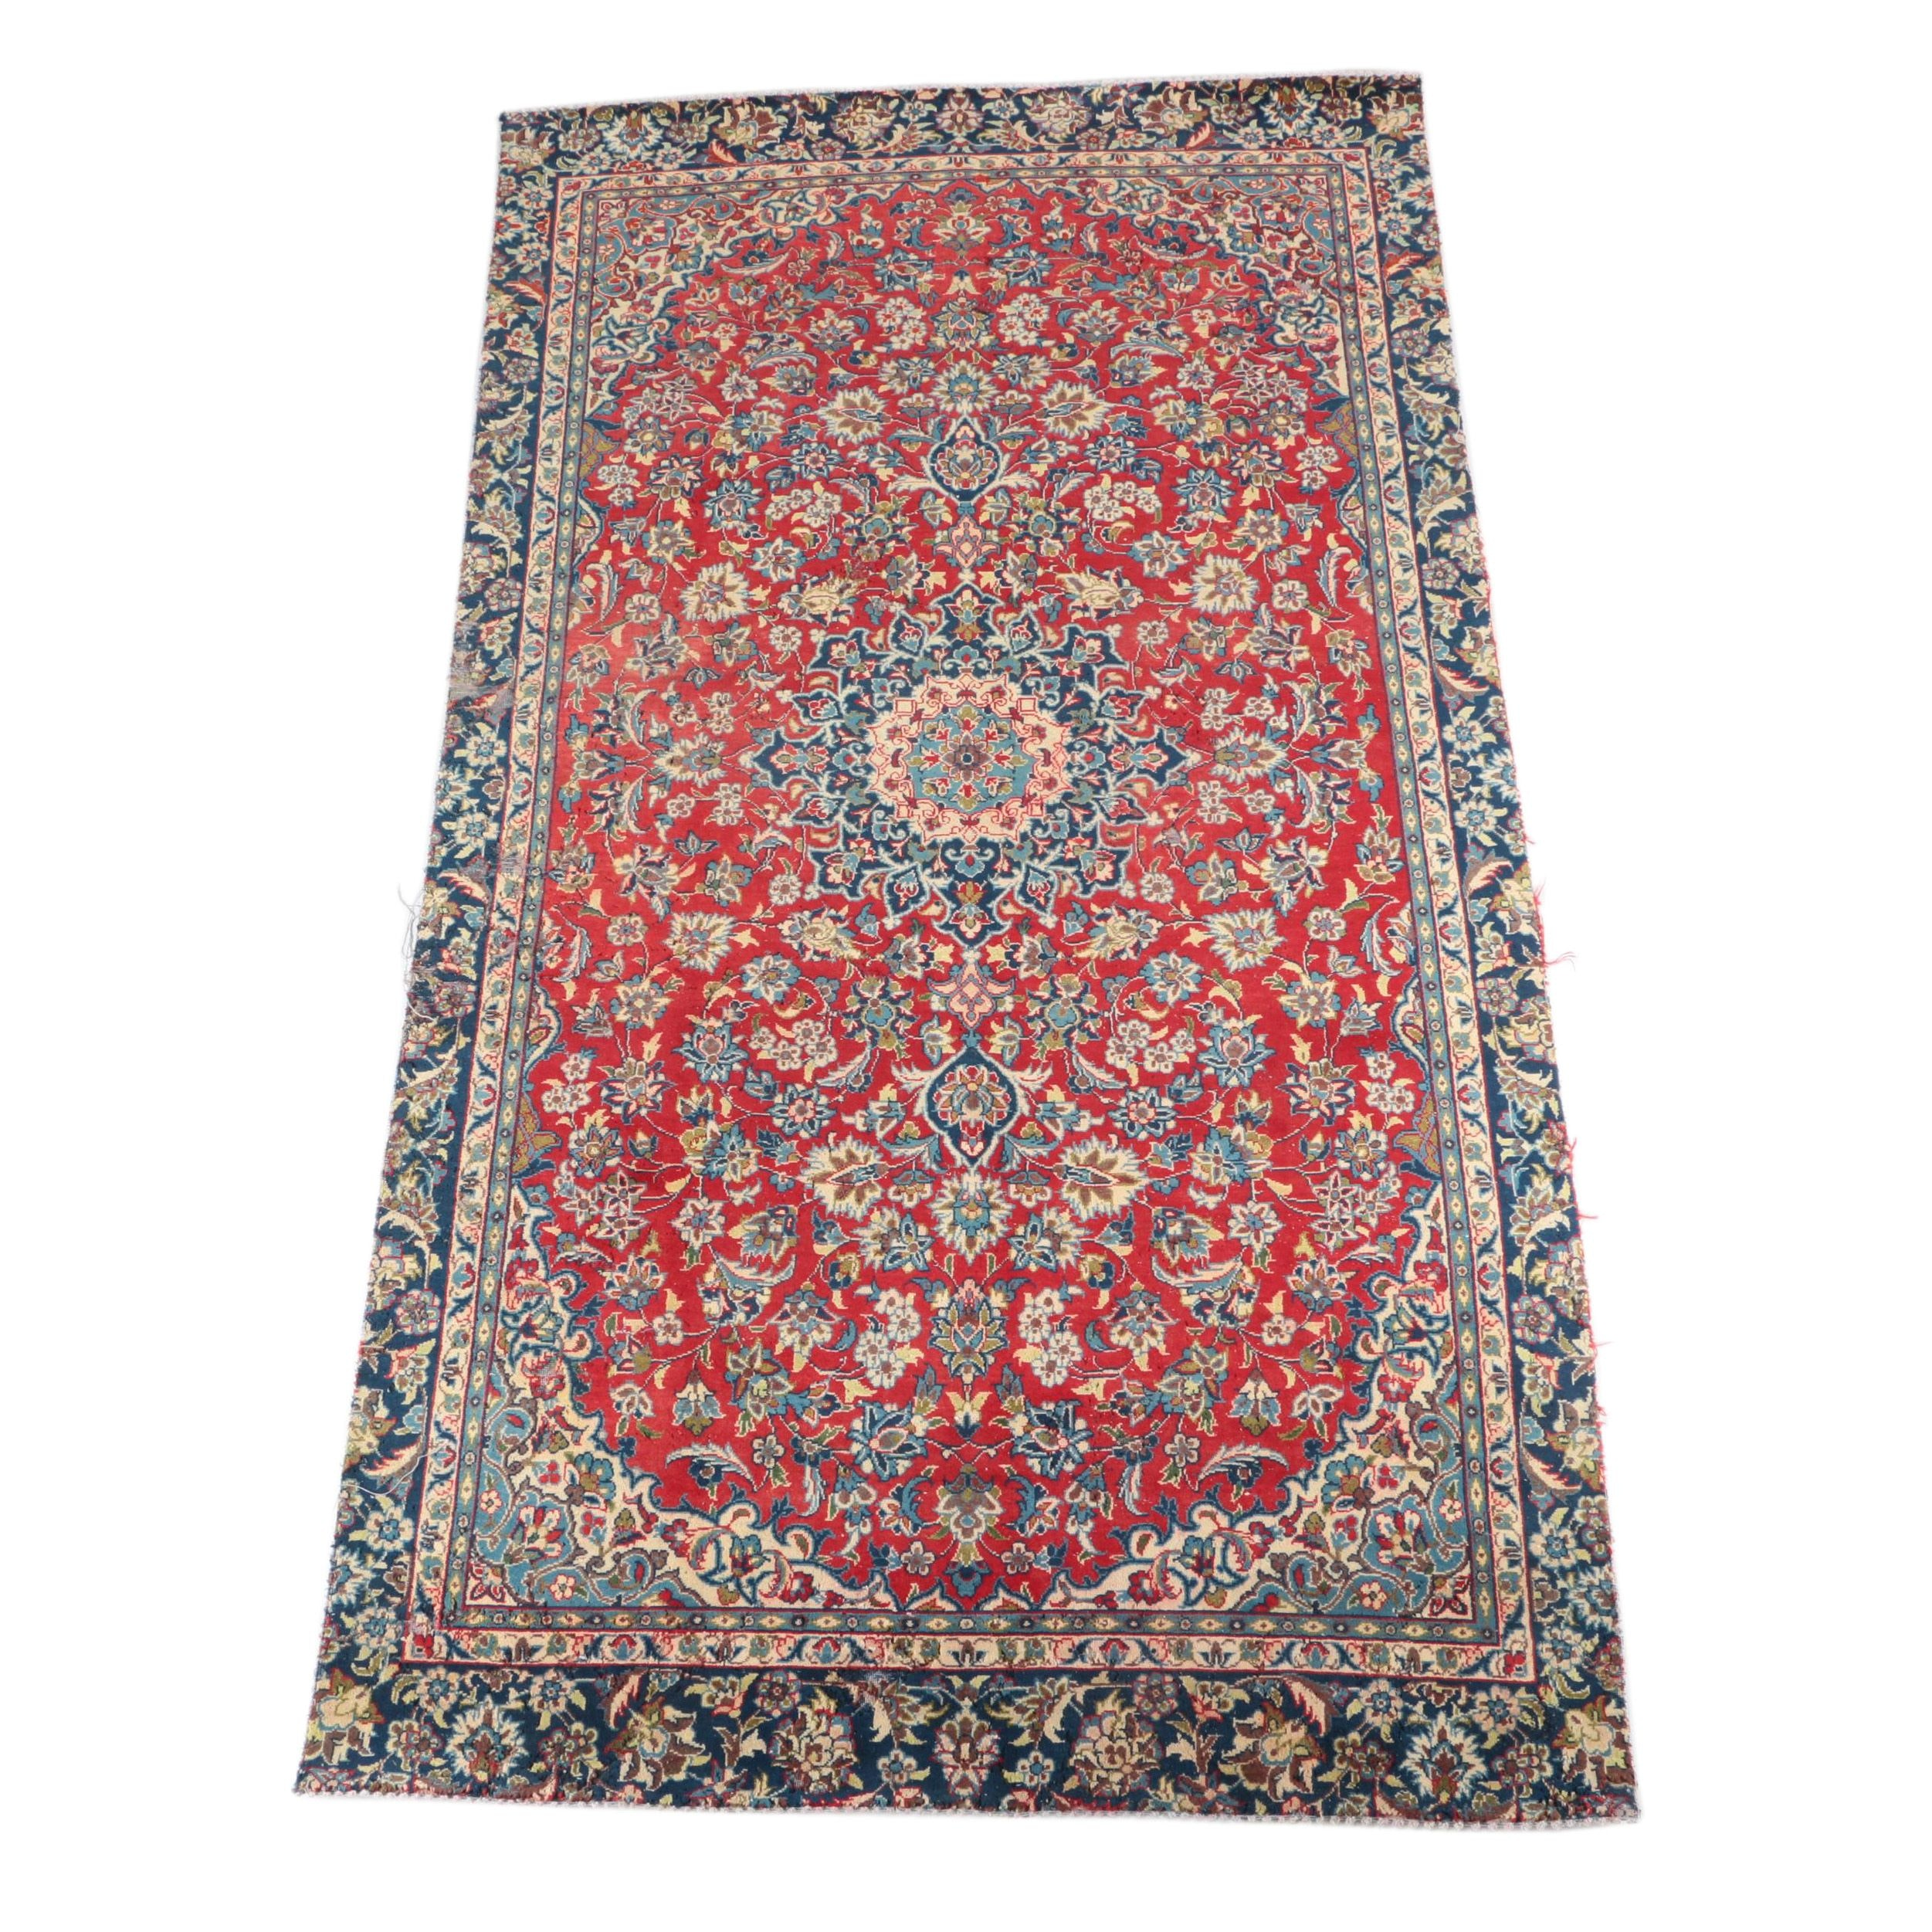 VIntage Hand-Knotted Isfahan Wool Area Rug